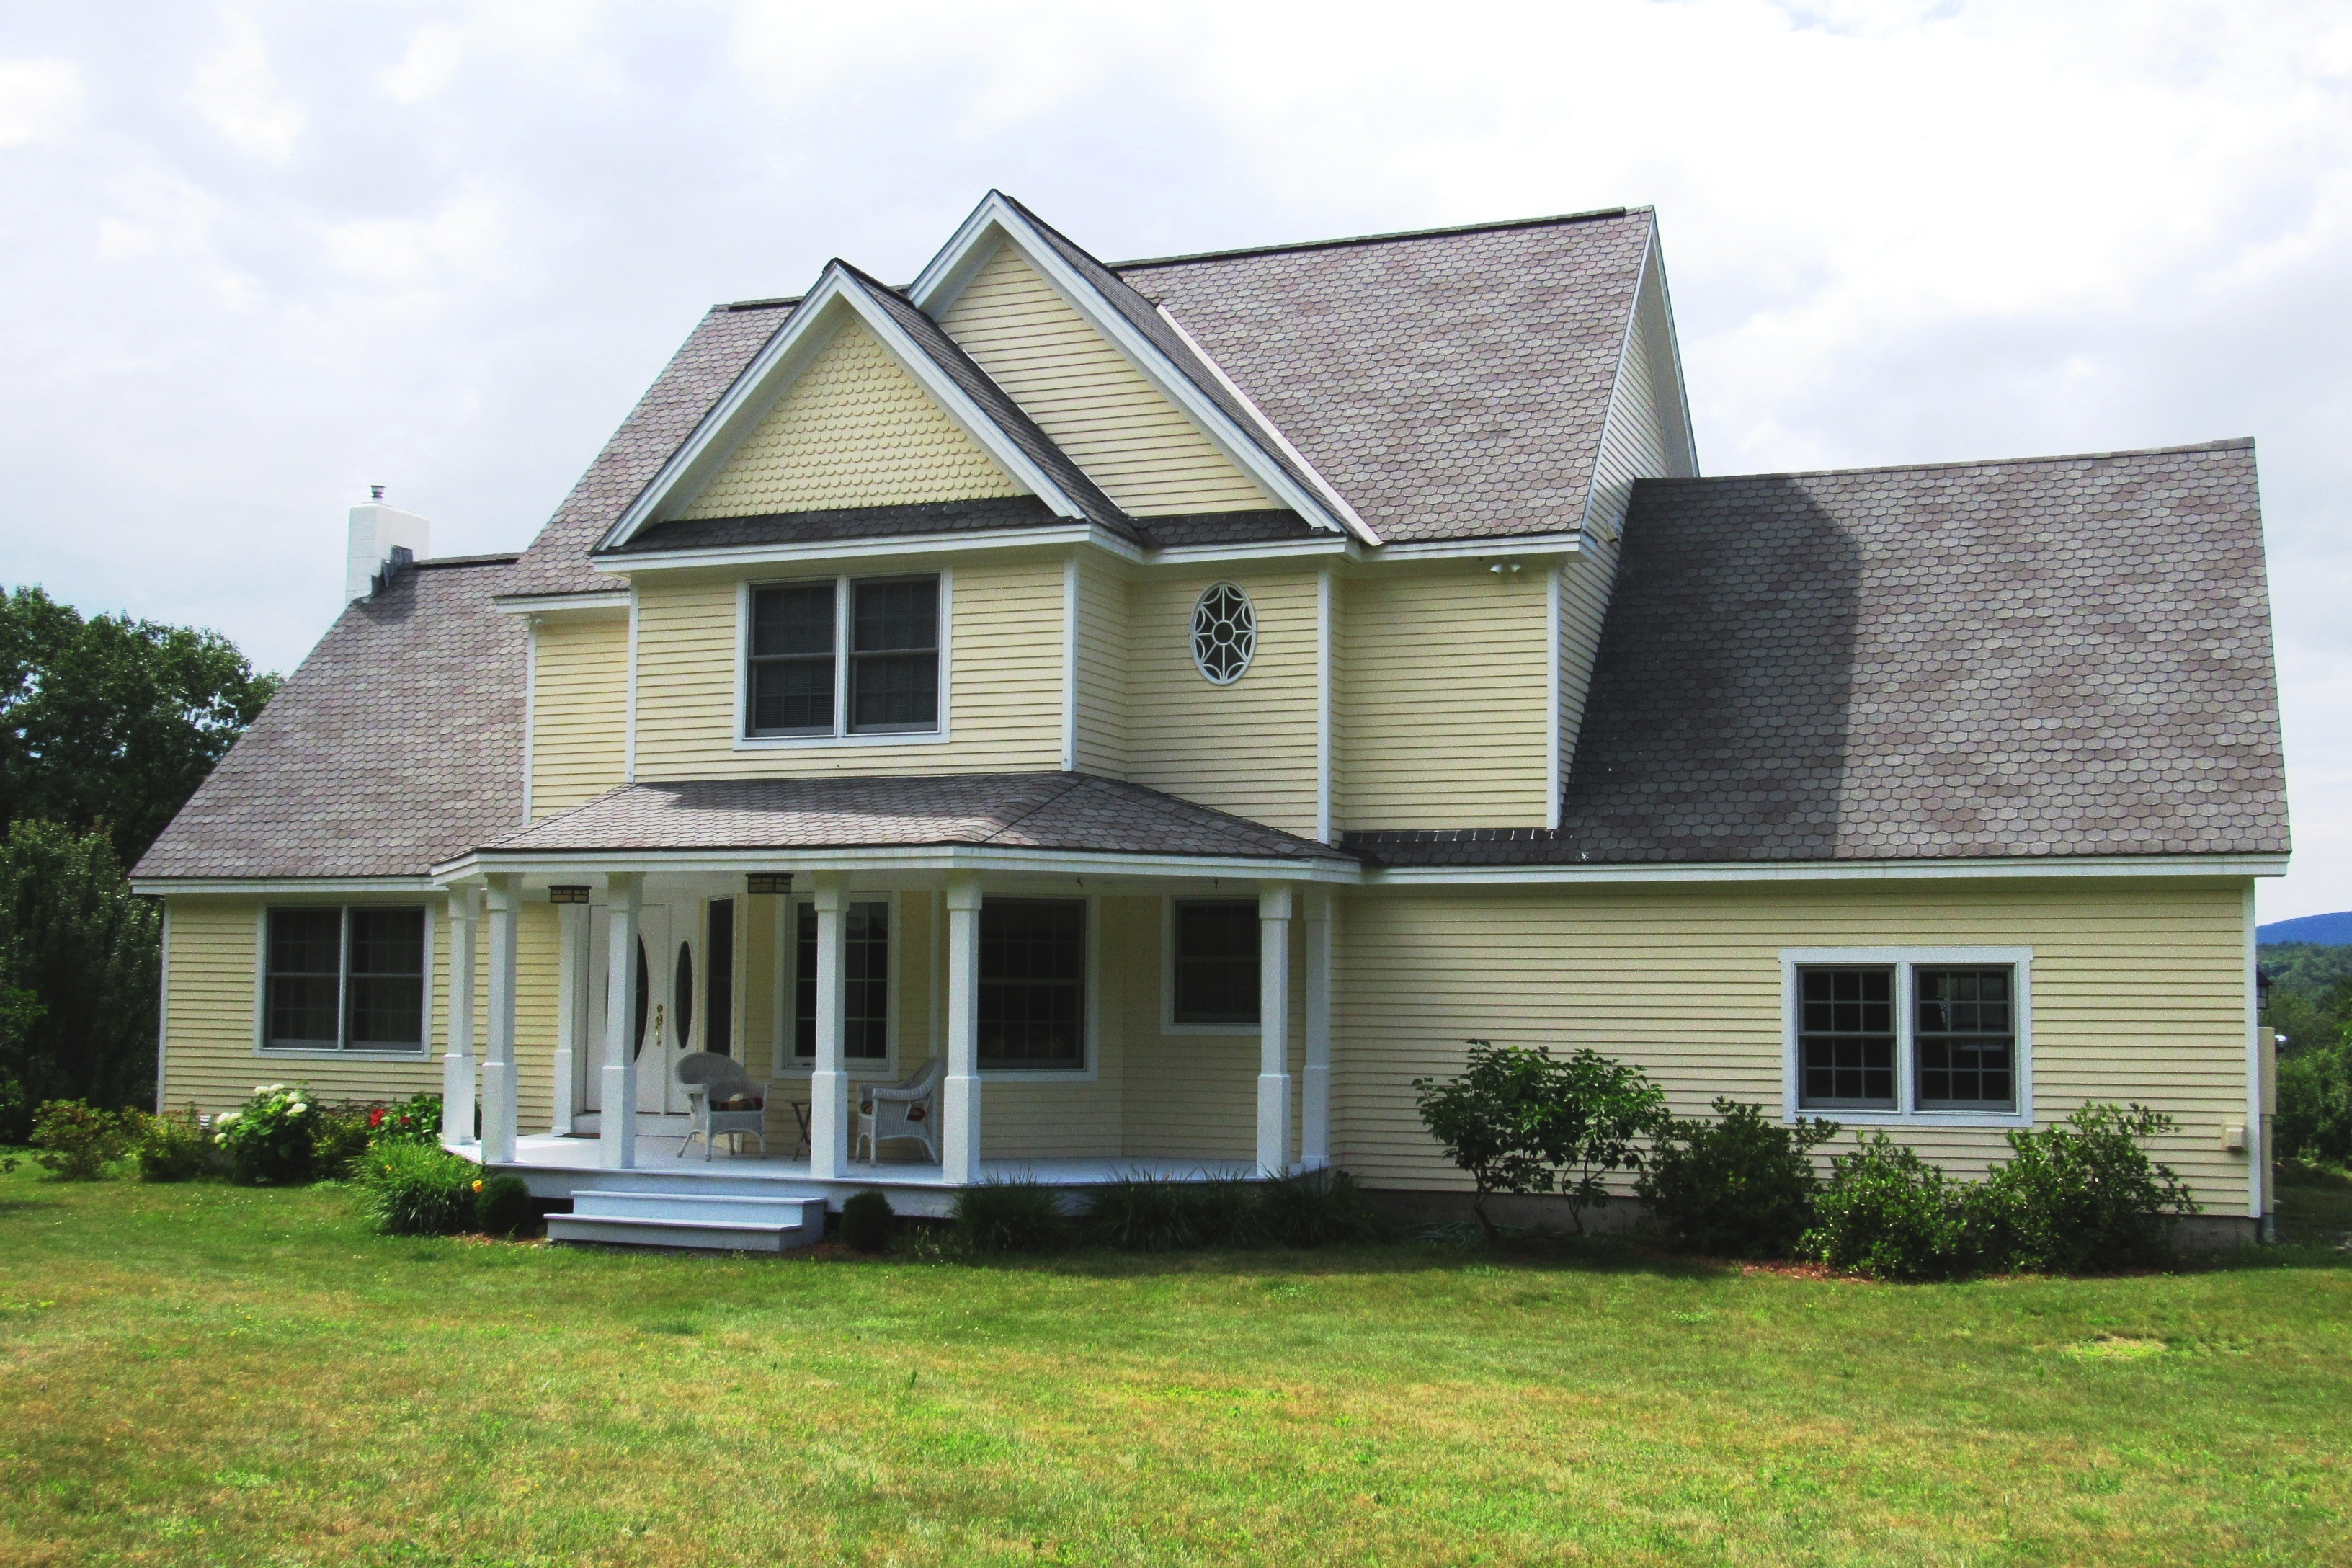 Single Family Home for Sale at 101 Prospect Hill, Canaan Canaan, New Hampshire 03741 United States